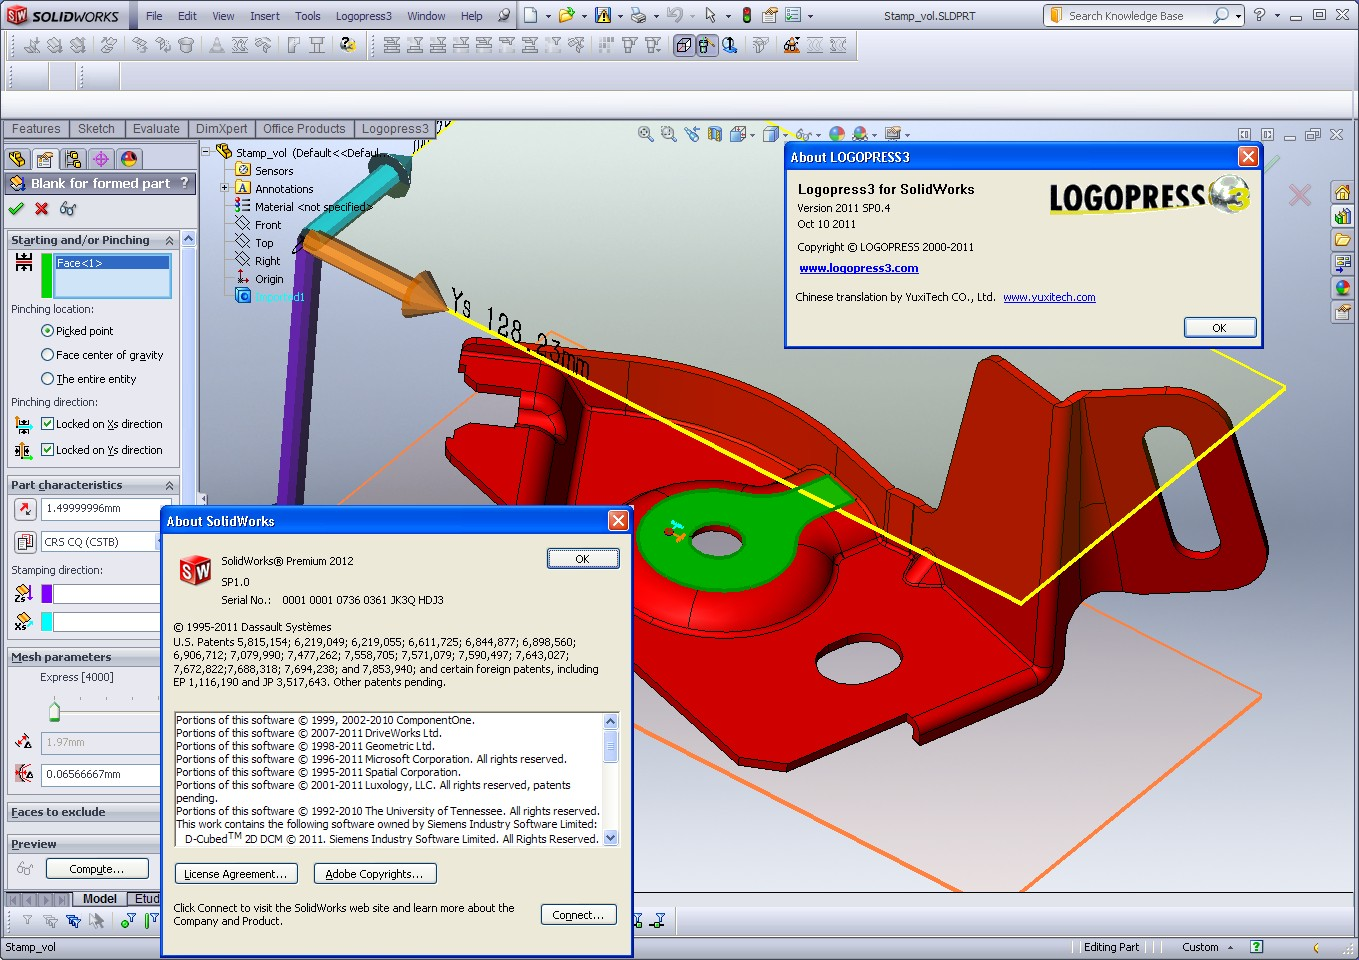 Working with Logopress3 2011 SP0.4 for SolidWorks 2010-2012 full